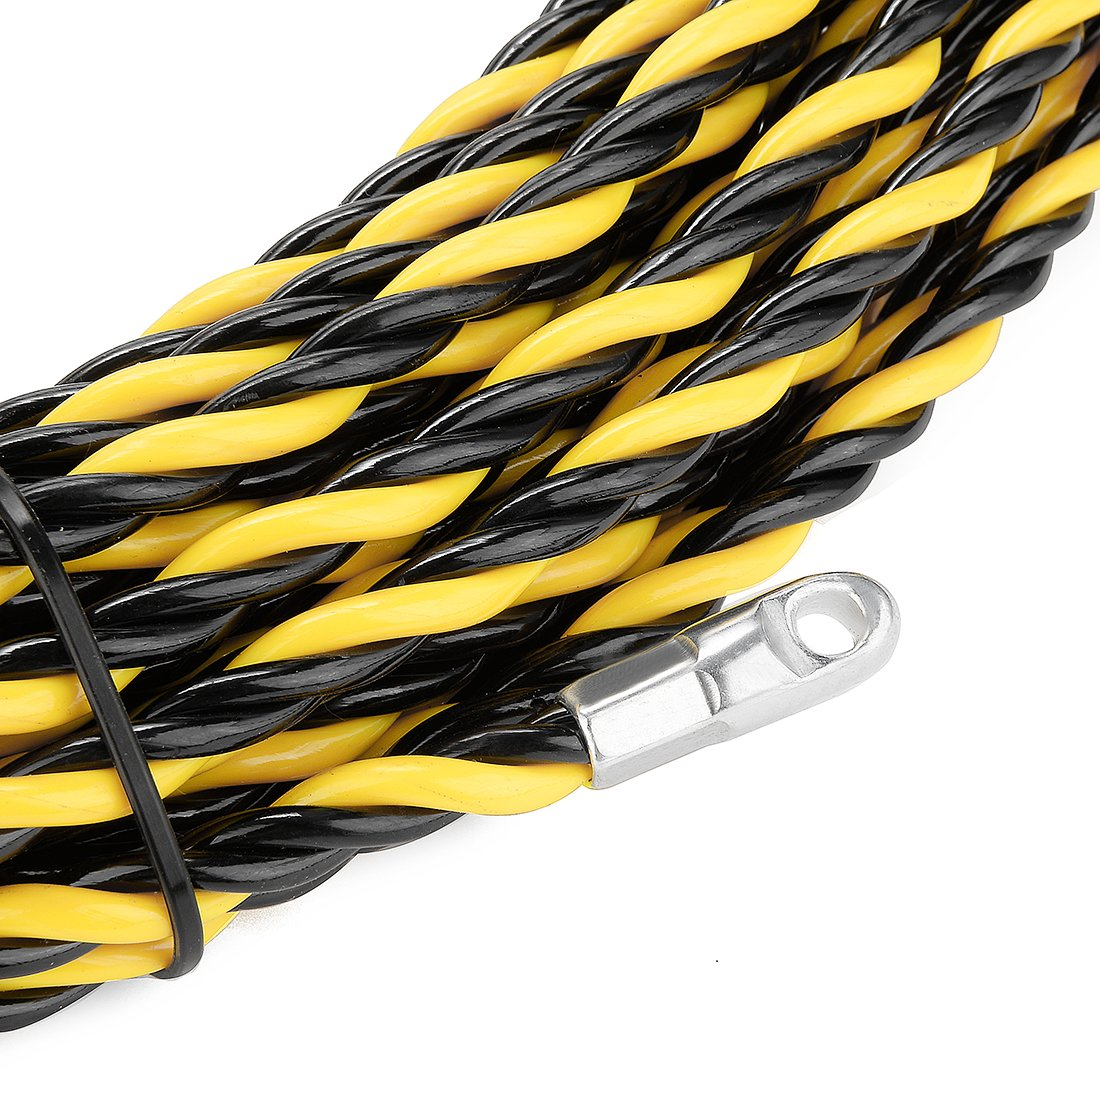 Uxcell Electrical Fish Tape Reel Pull Communication Wire Cable Line Conduit From Drywall Ceiling Under Rug